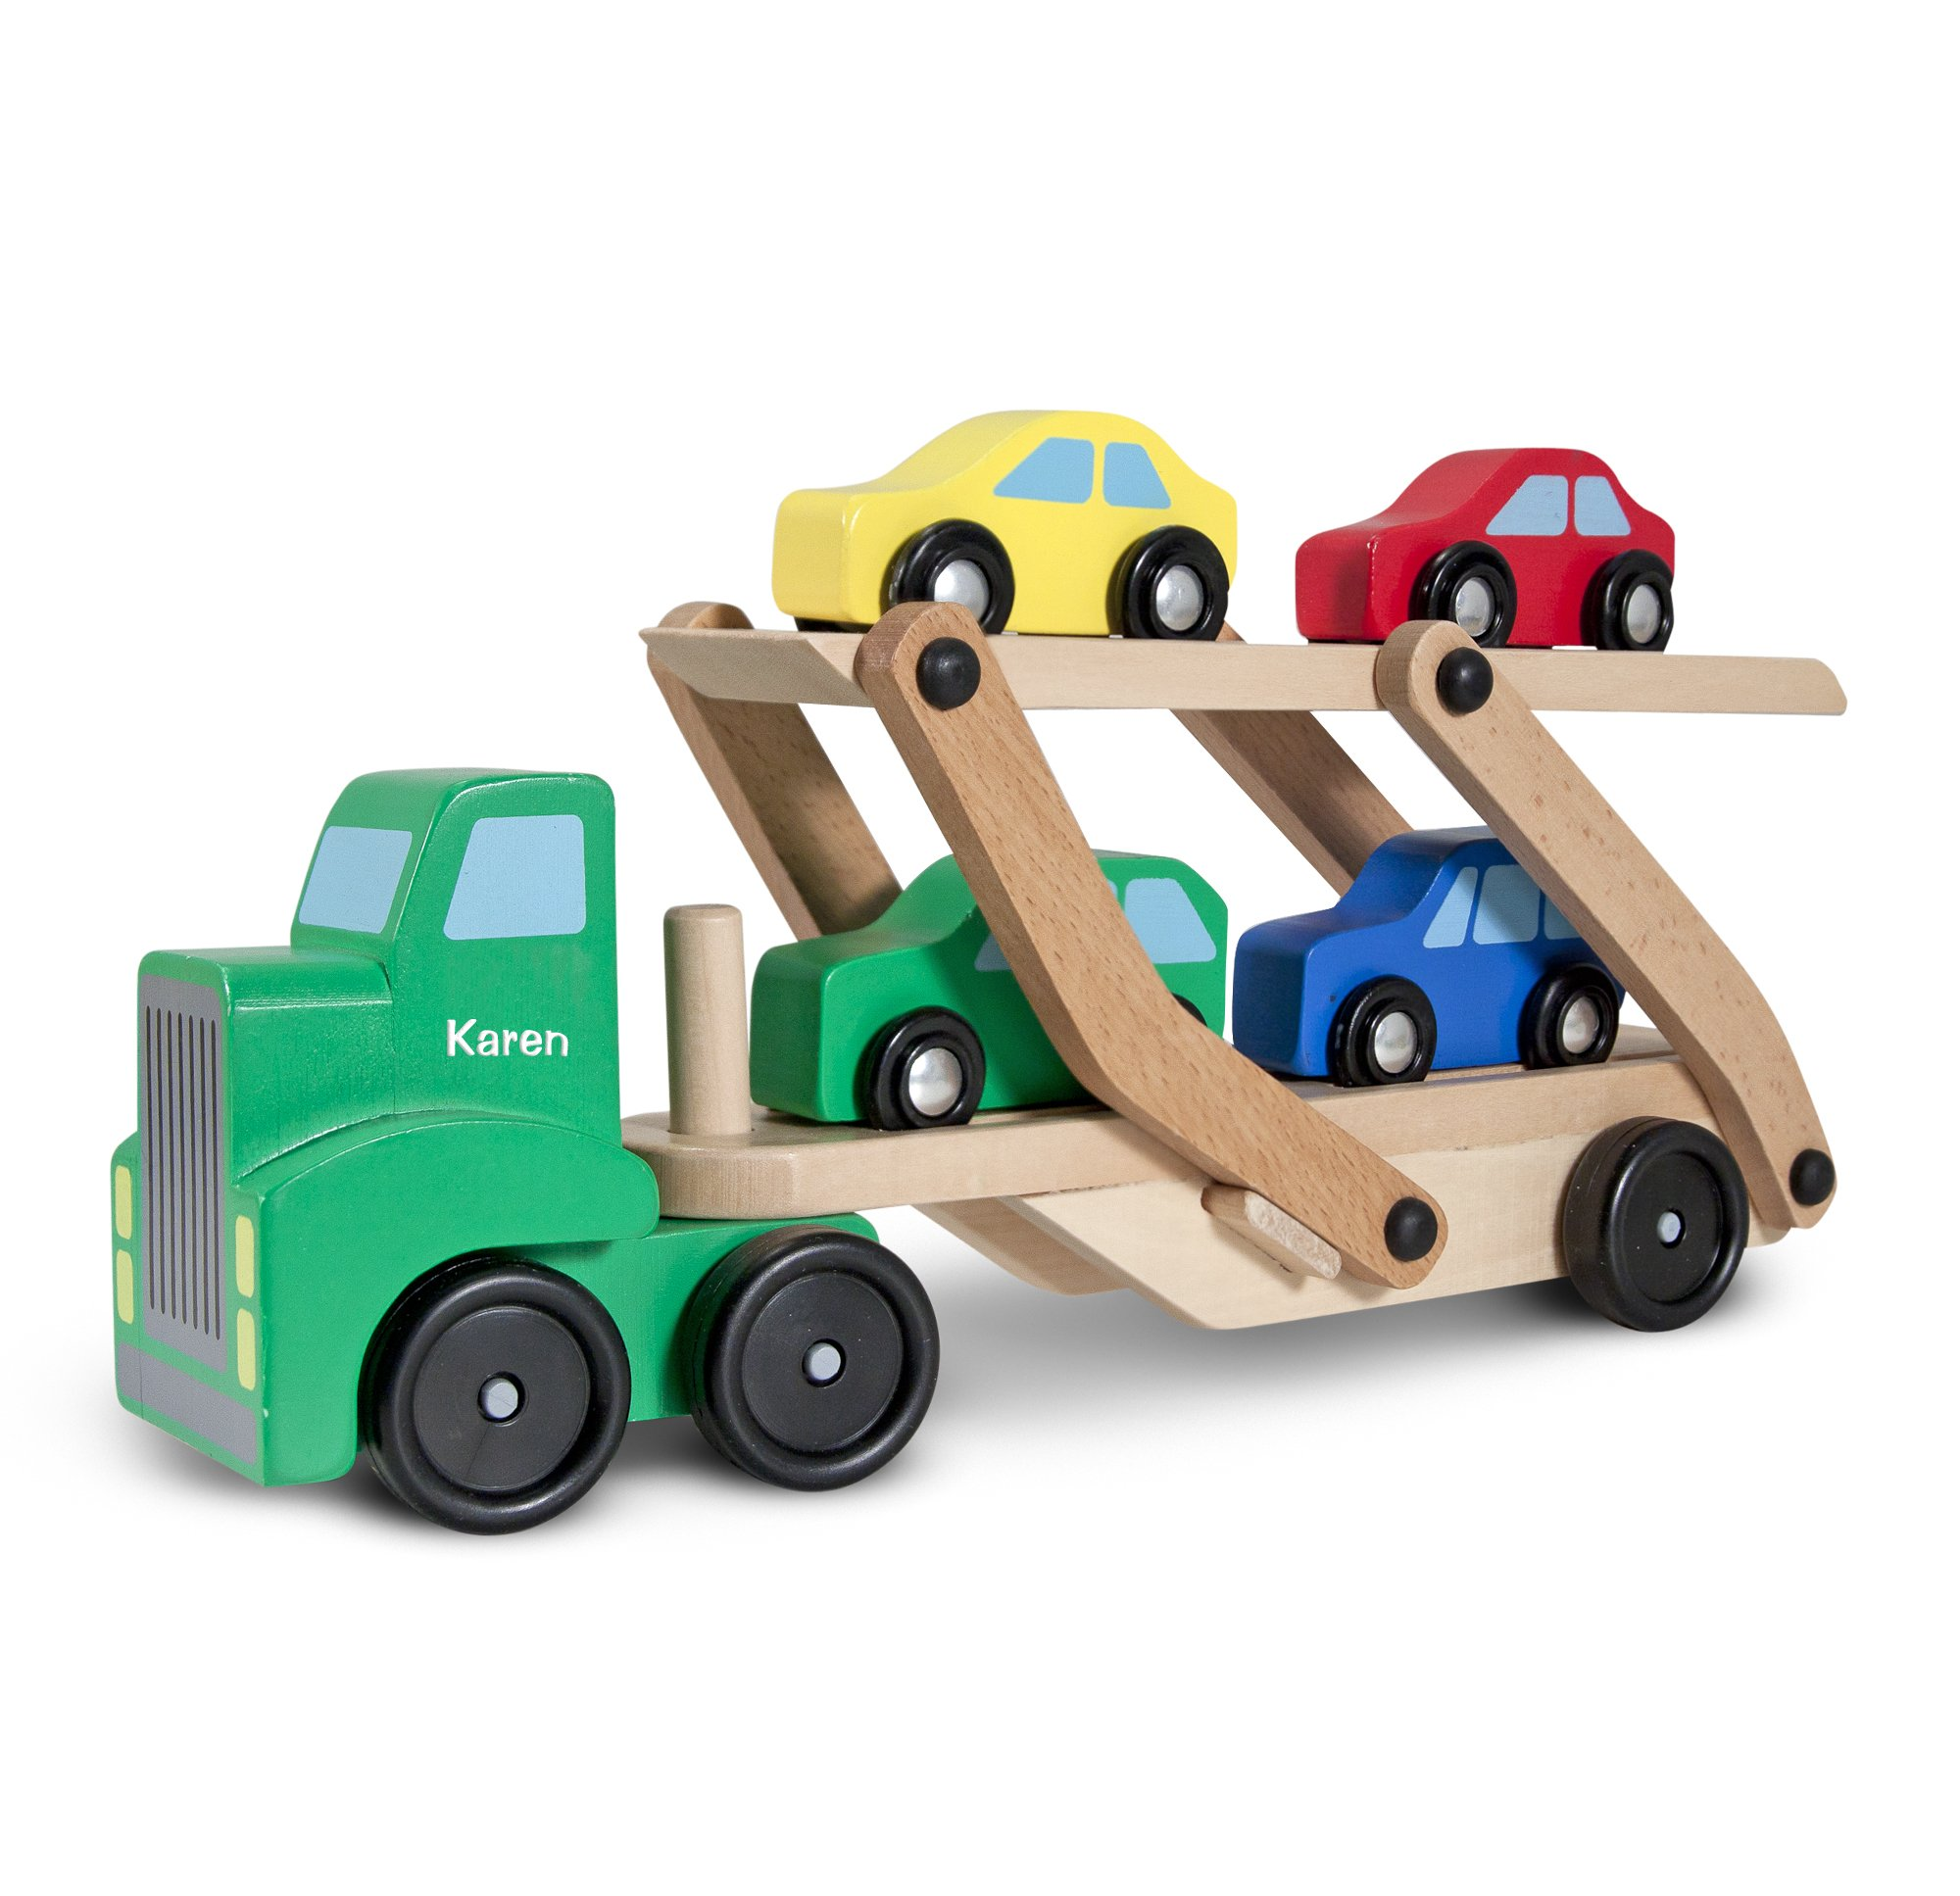 Melissa & Doug Personalized Car Carrier Wooden Toy Set with 1 Truck & 4 Cars Vehicle